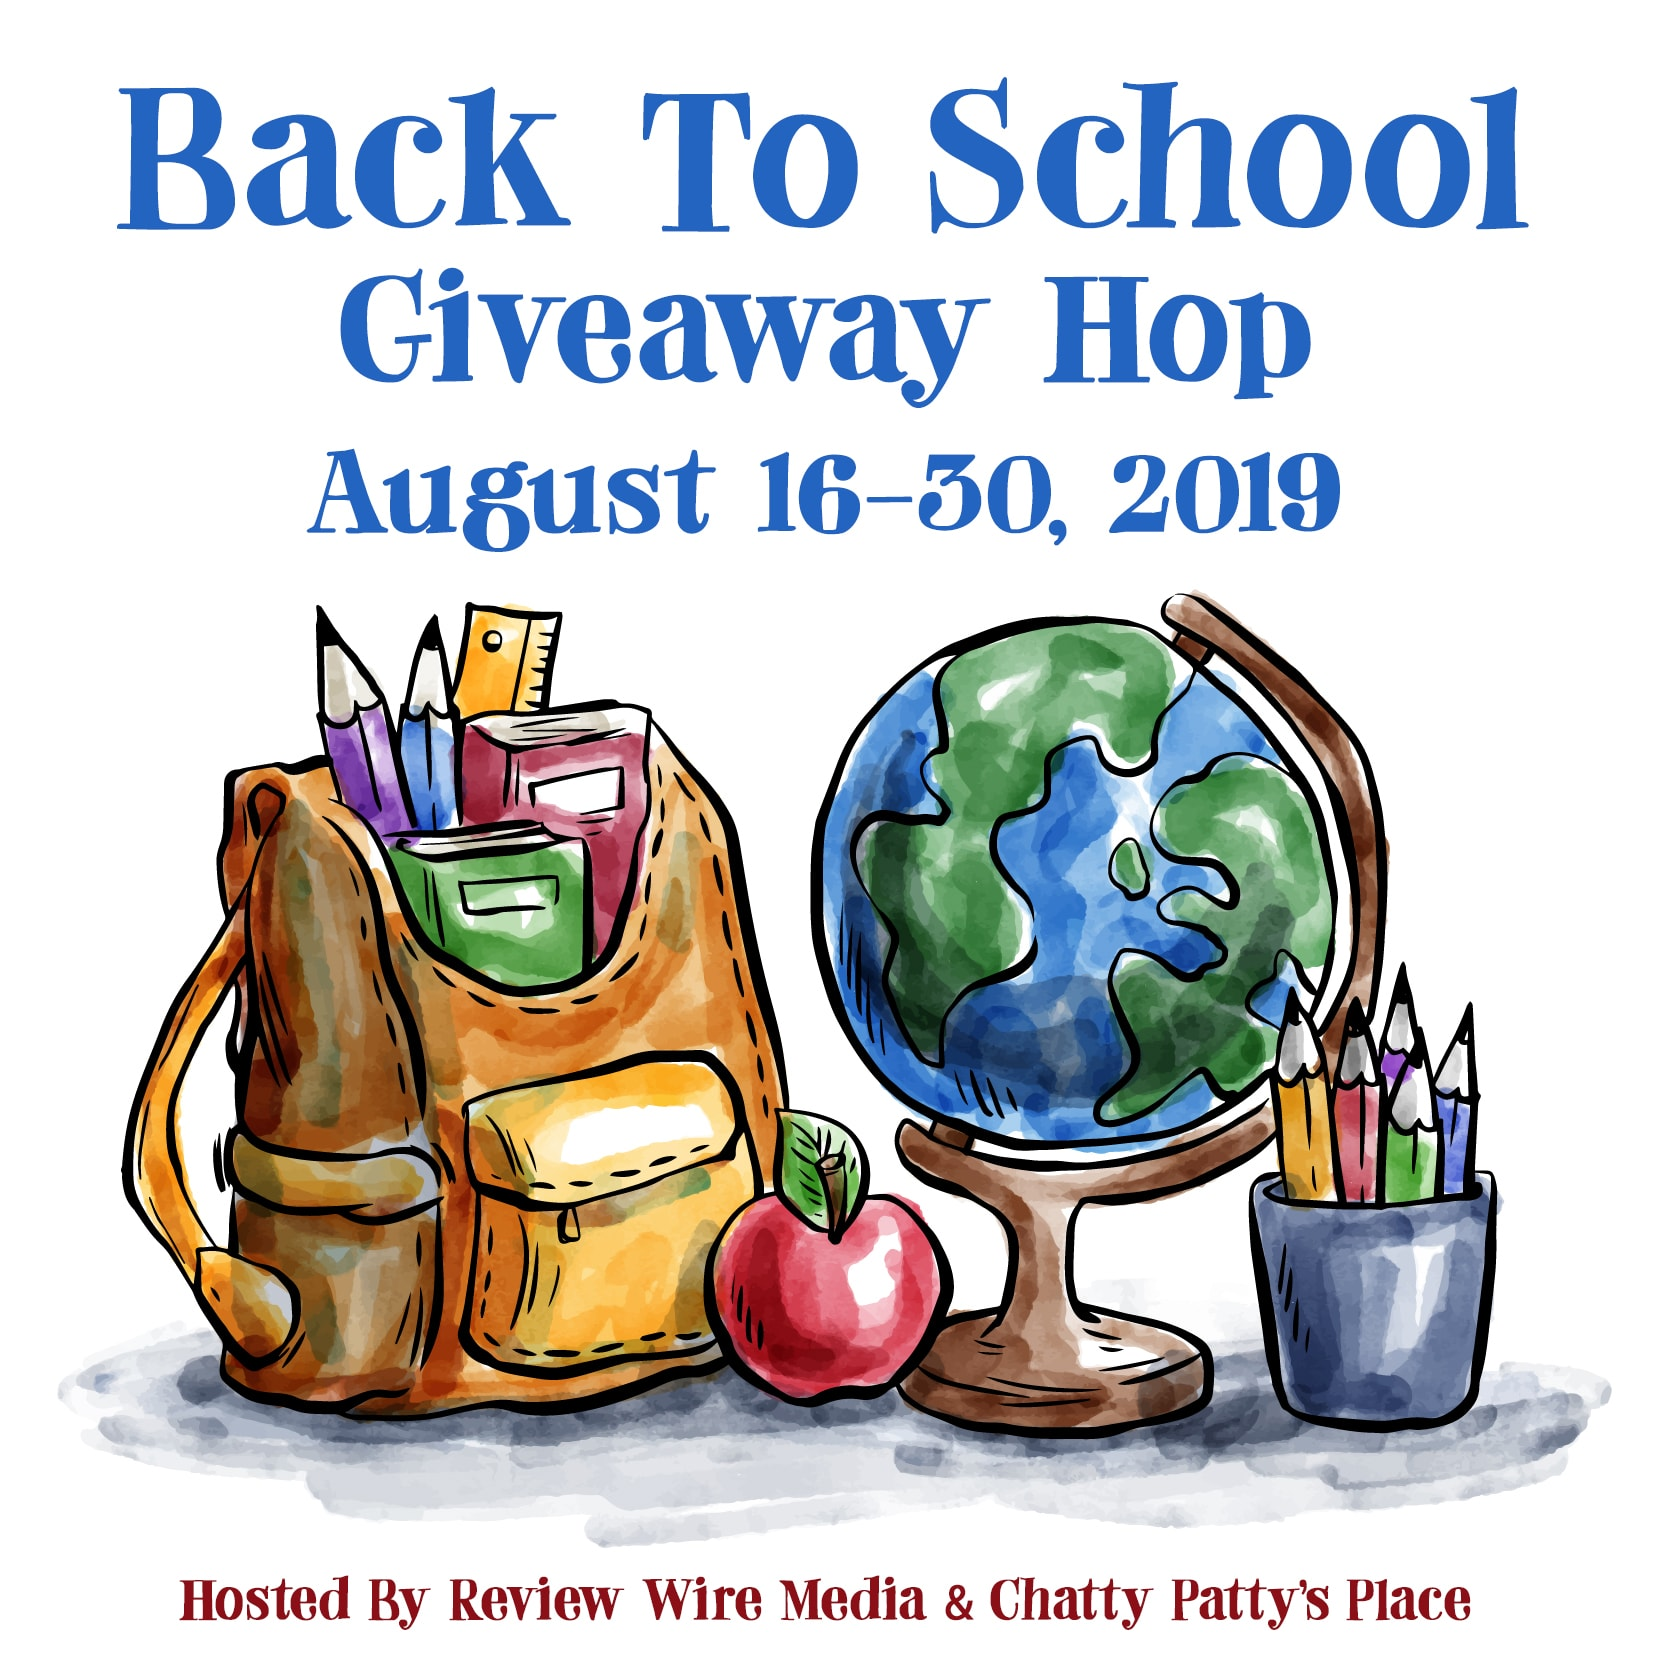 Back to School Giveaway Hop 2019